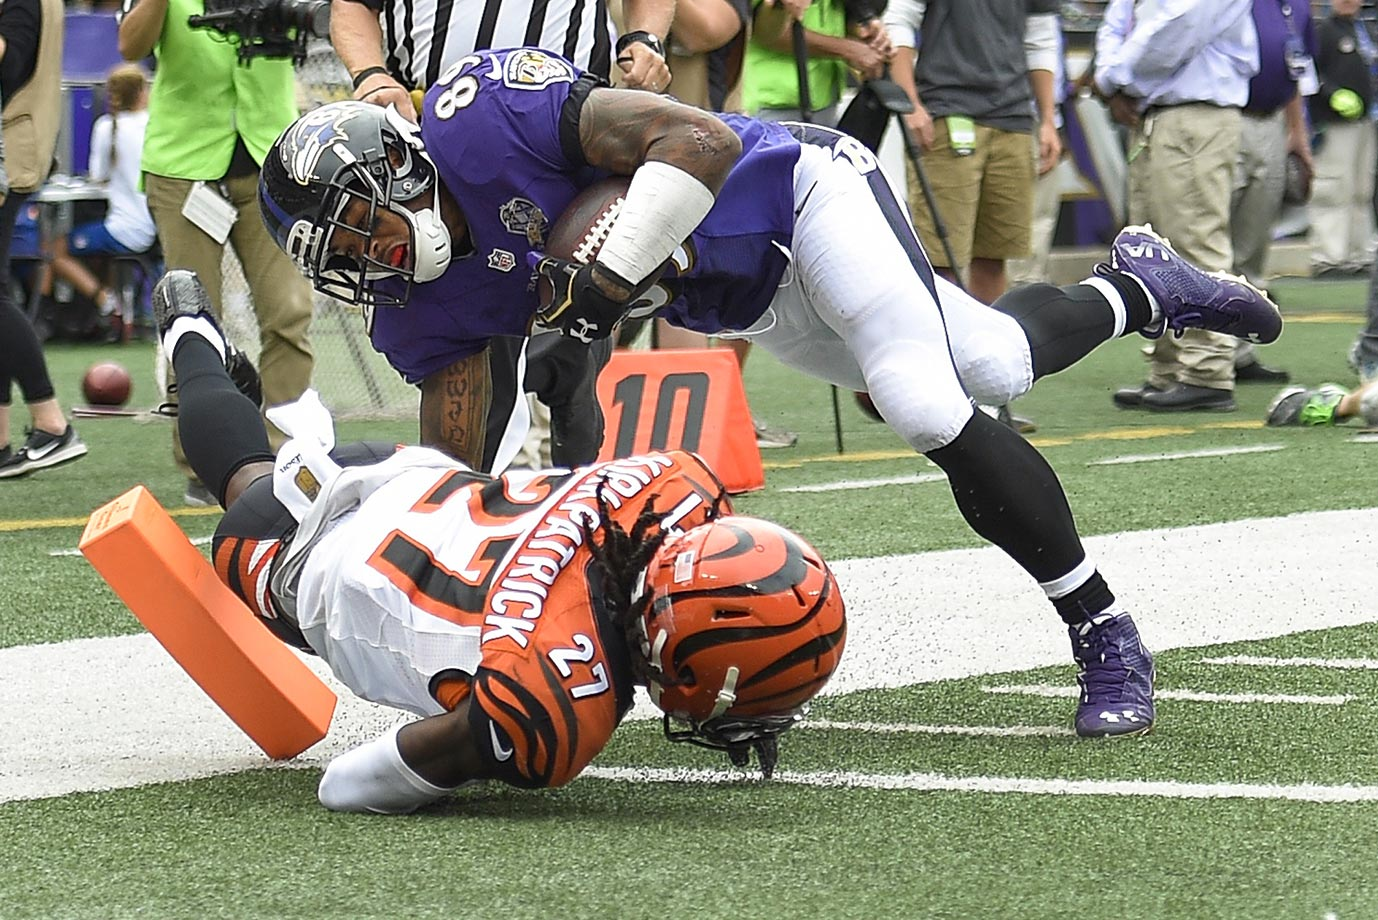 Steve Smith dives over Cincinnati cornerback Dre Kirkpatrick for a touchdown.